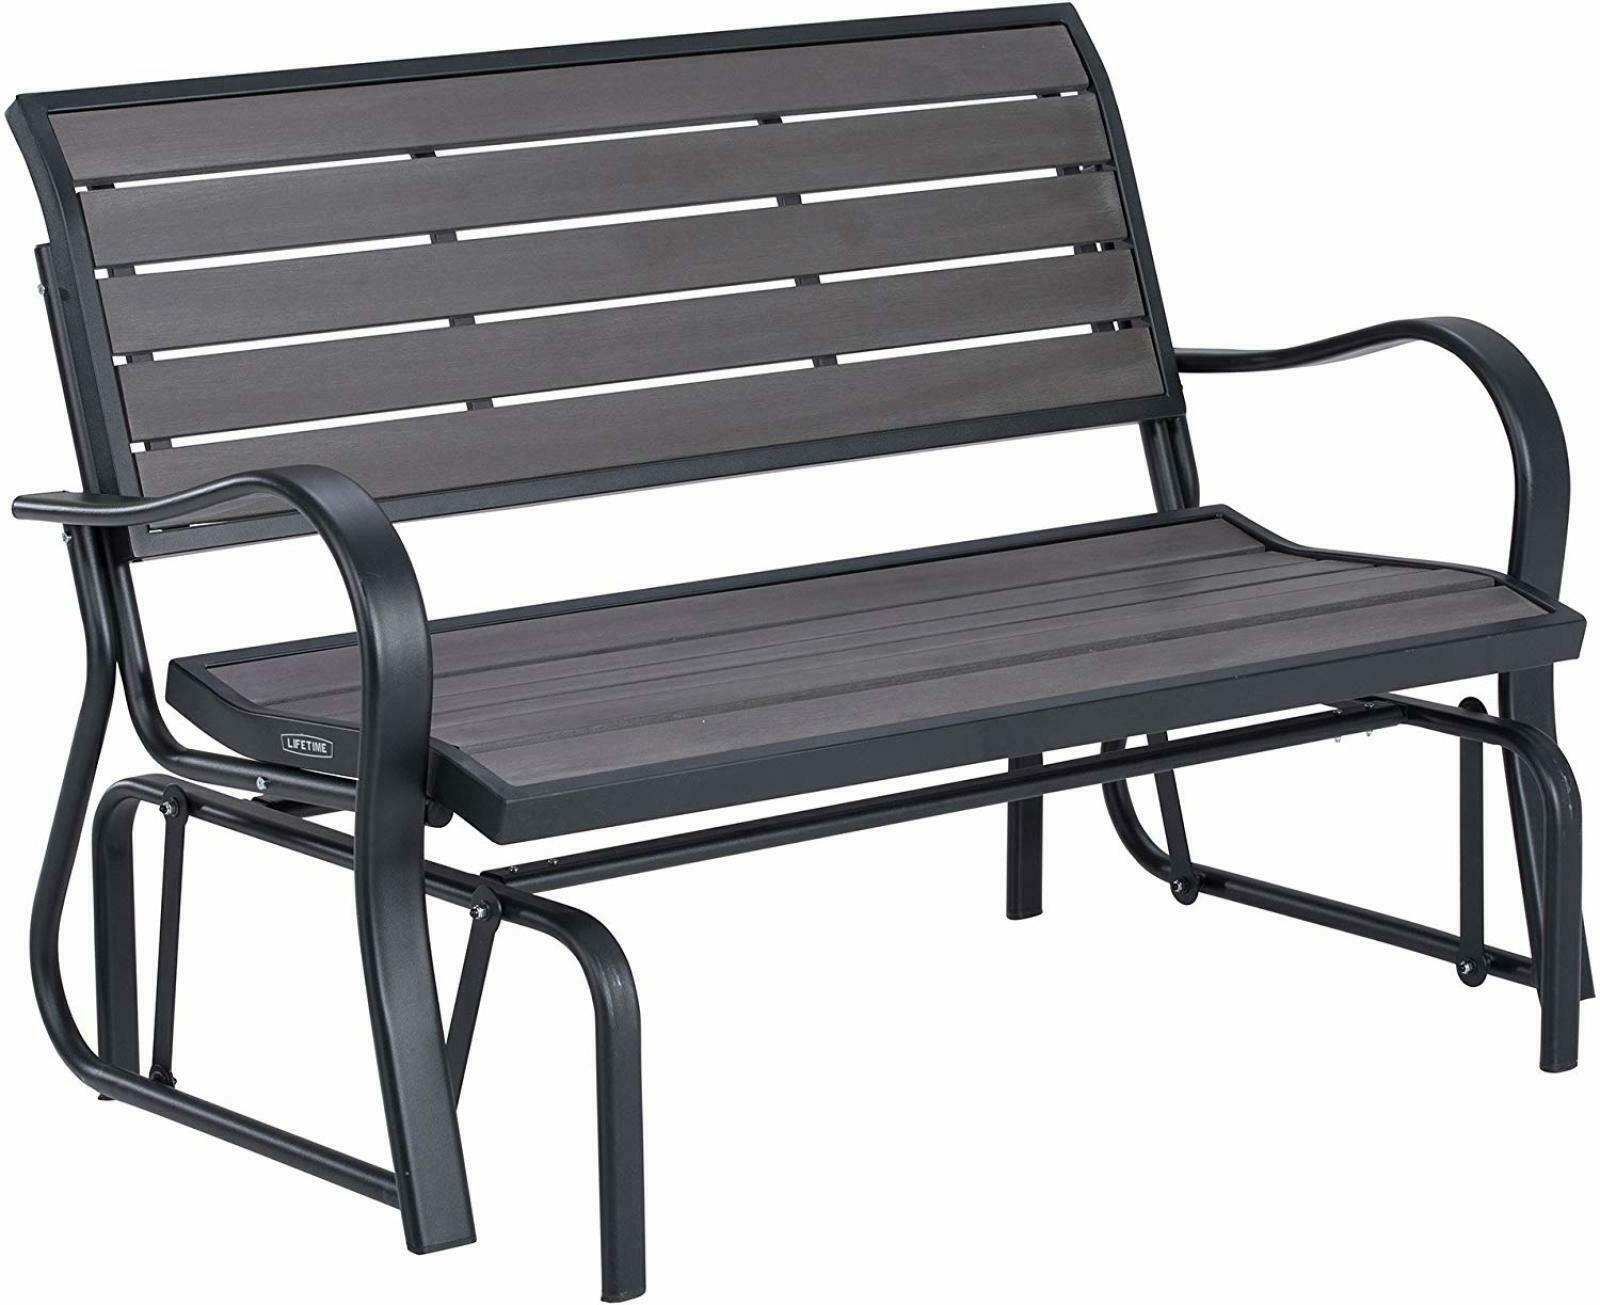 Patio Swing Loveseat Chair 2 People Seats Outdoor Glider Steel Frame Grey Bench Within Outdoor Steel Patio Swing Glider Benches (View 6 of 25)